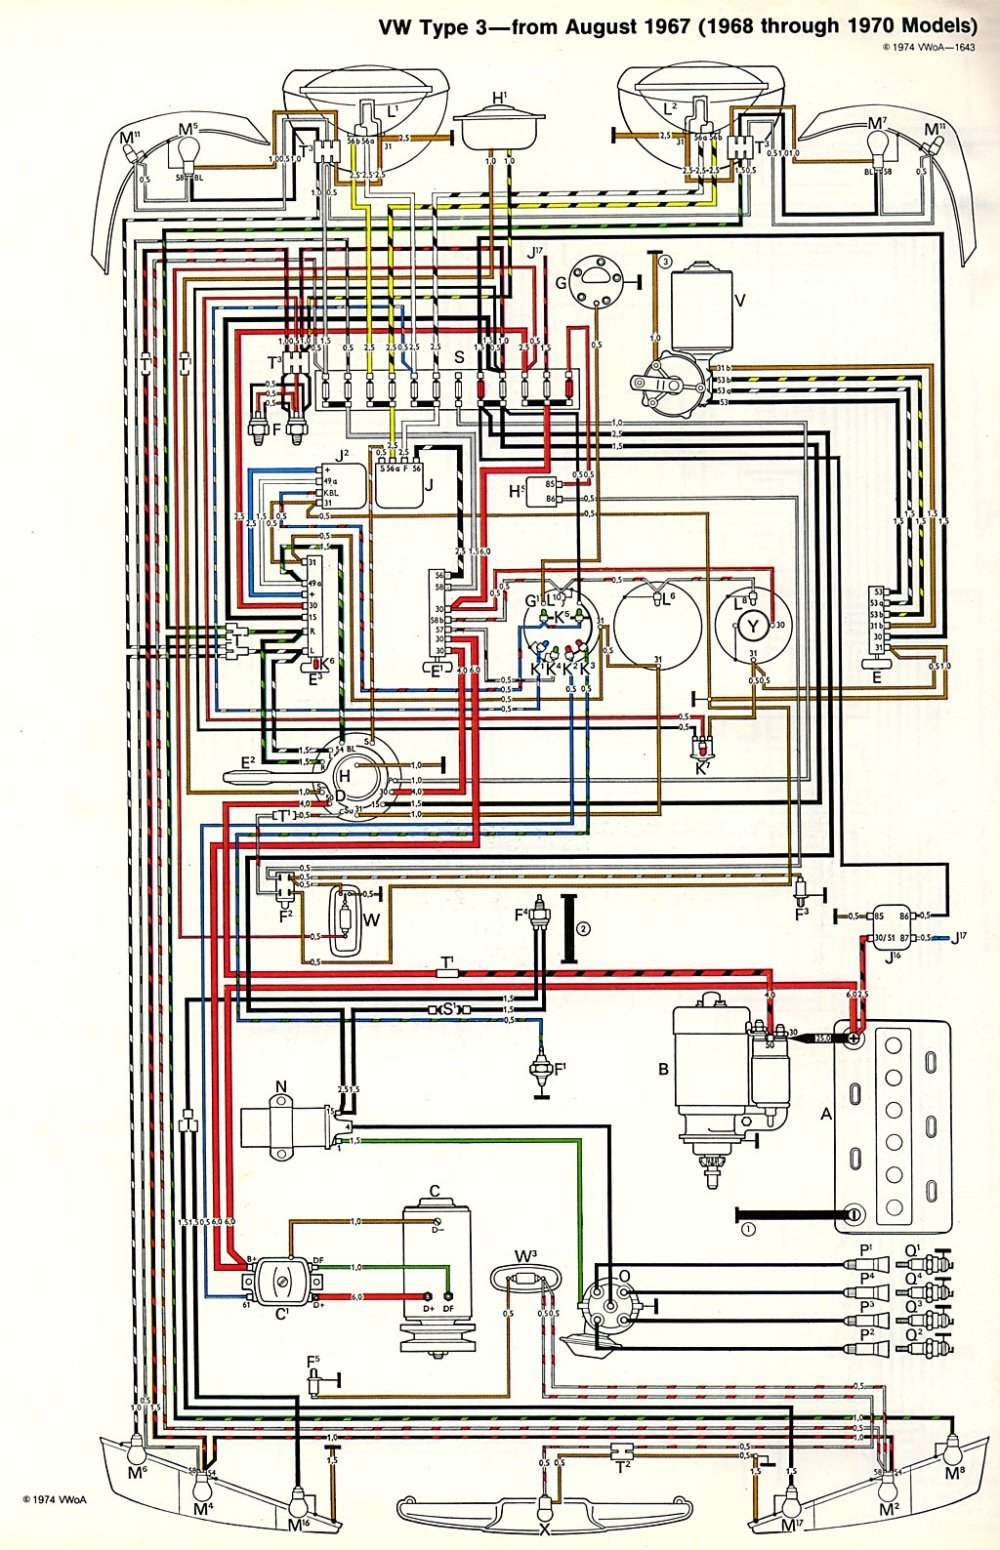 medium resolution of thesamba com type 3 wiring diagrams 1971 vw type 3 wiring diagram volkswagen type 3 wiring diagram